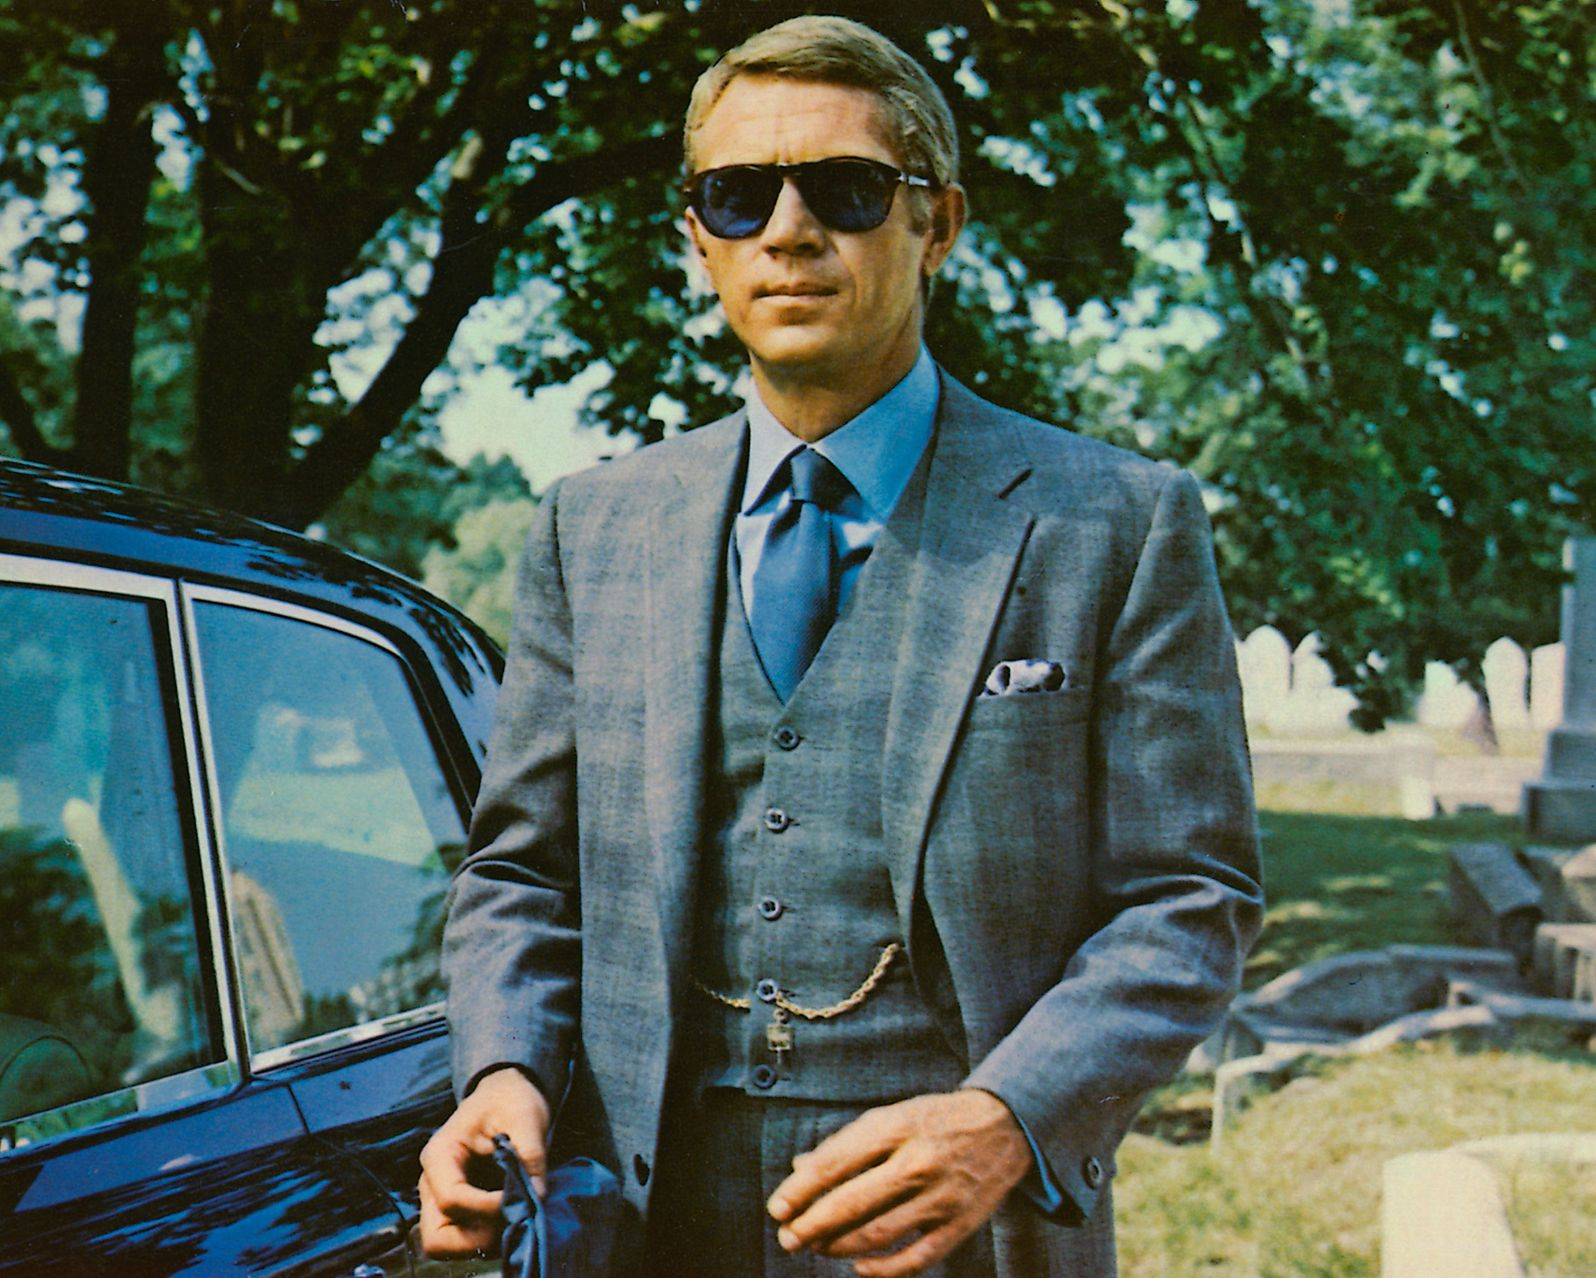 with widows steve mcqueen fashions his version of the - HD1200×961